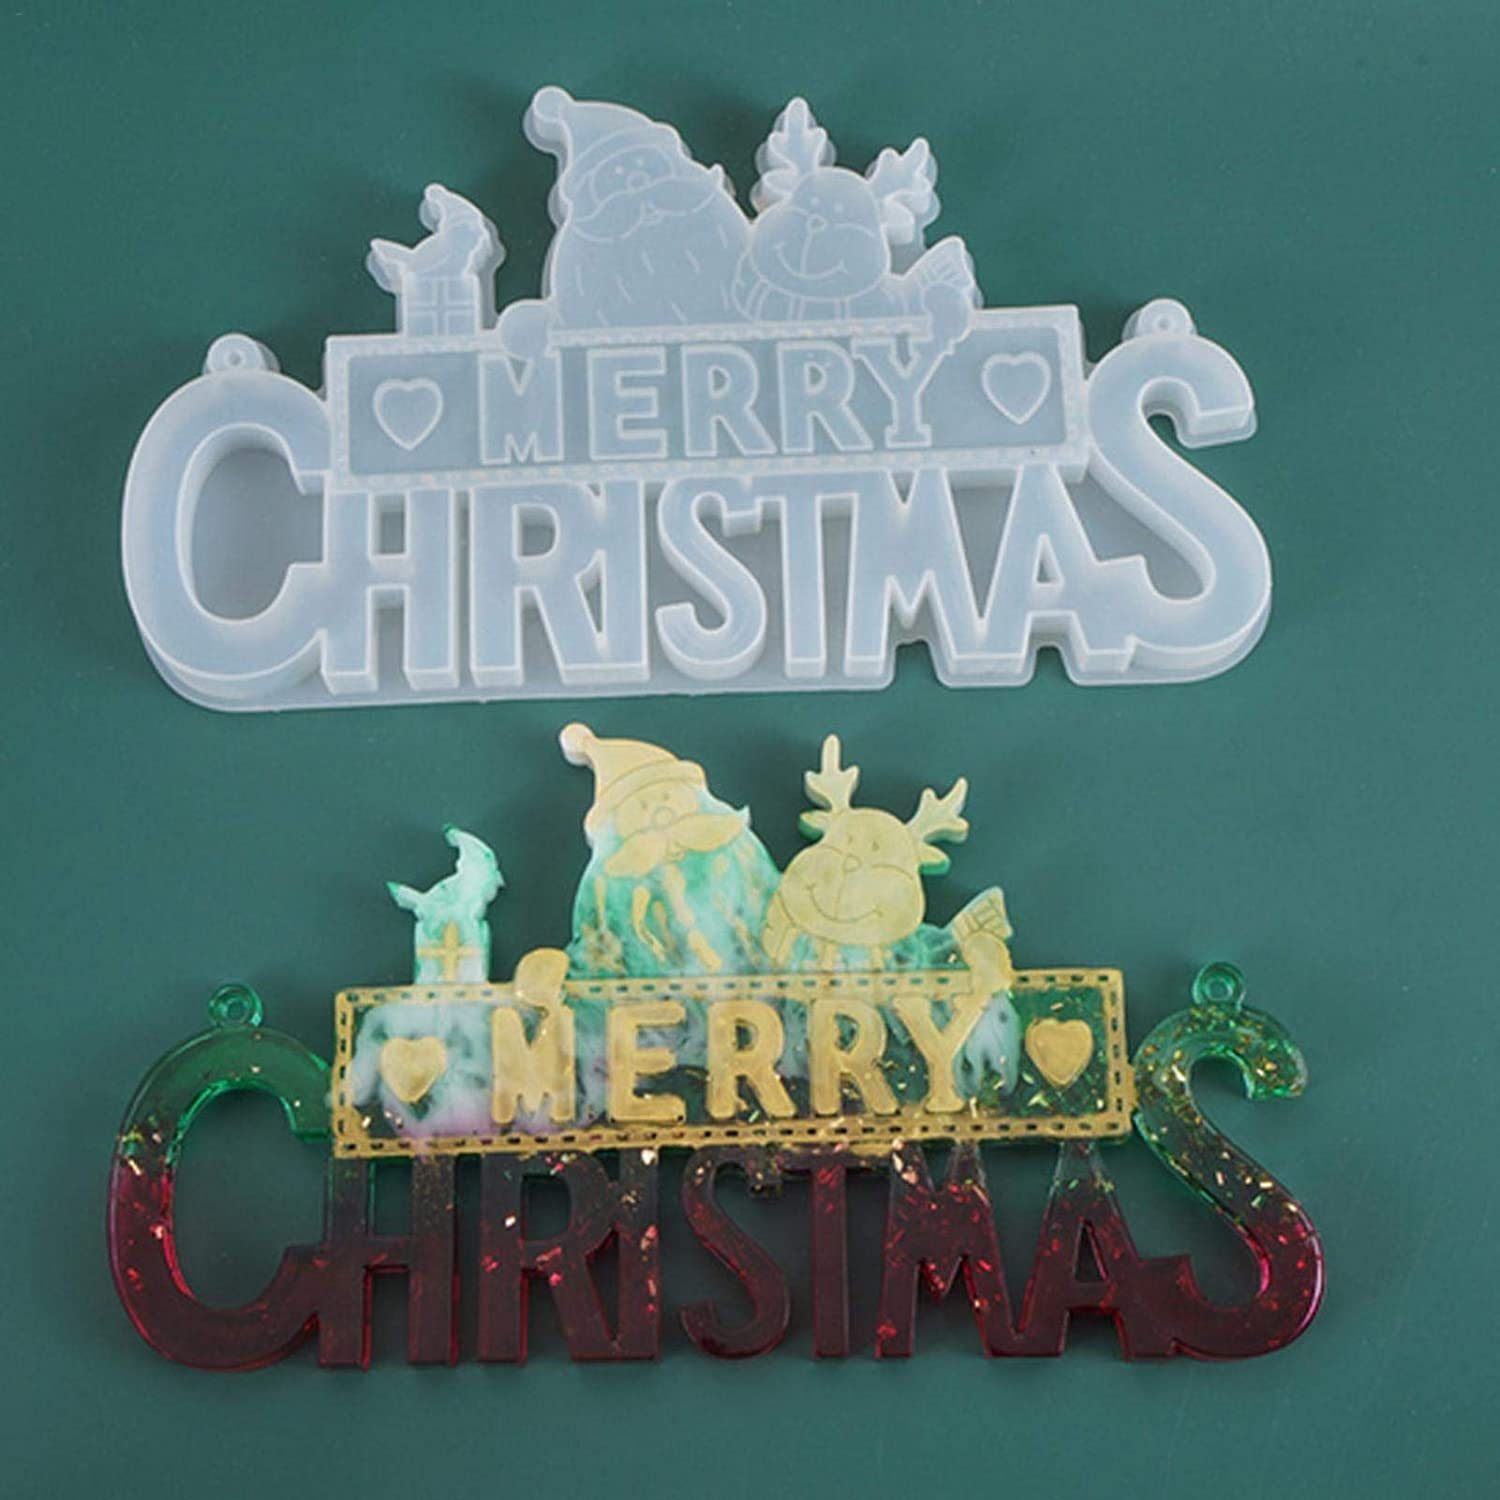 Merry Christmas Resin Mold We Wish You A Merry Christmas Silicone Mould Letter Jewelry Casting Resin Epoxy Mold for DIY Making Christmas Tree Ornament Craft Decor Candy Soap Candle